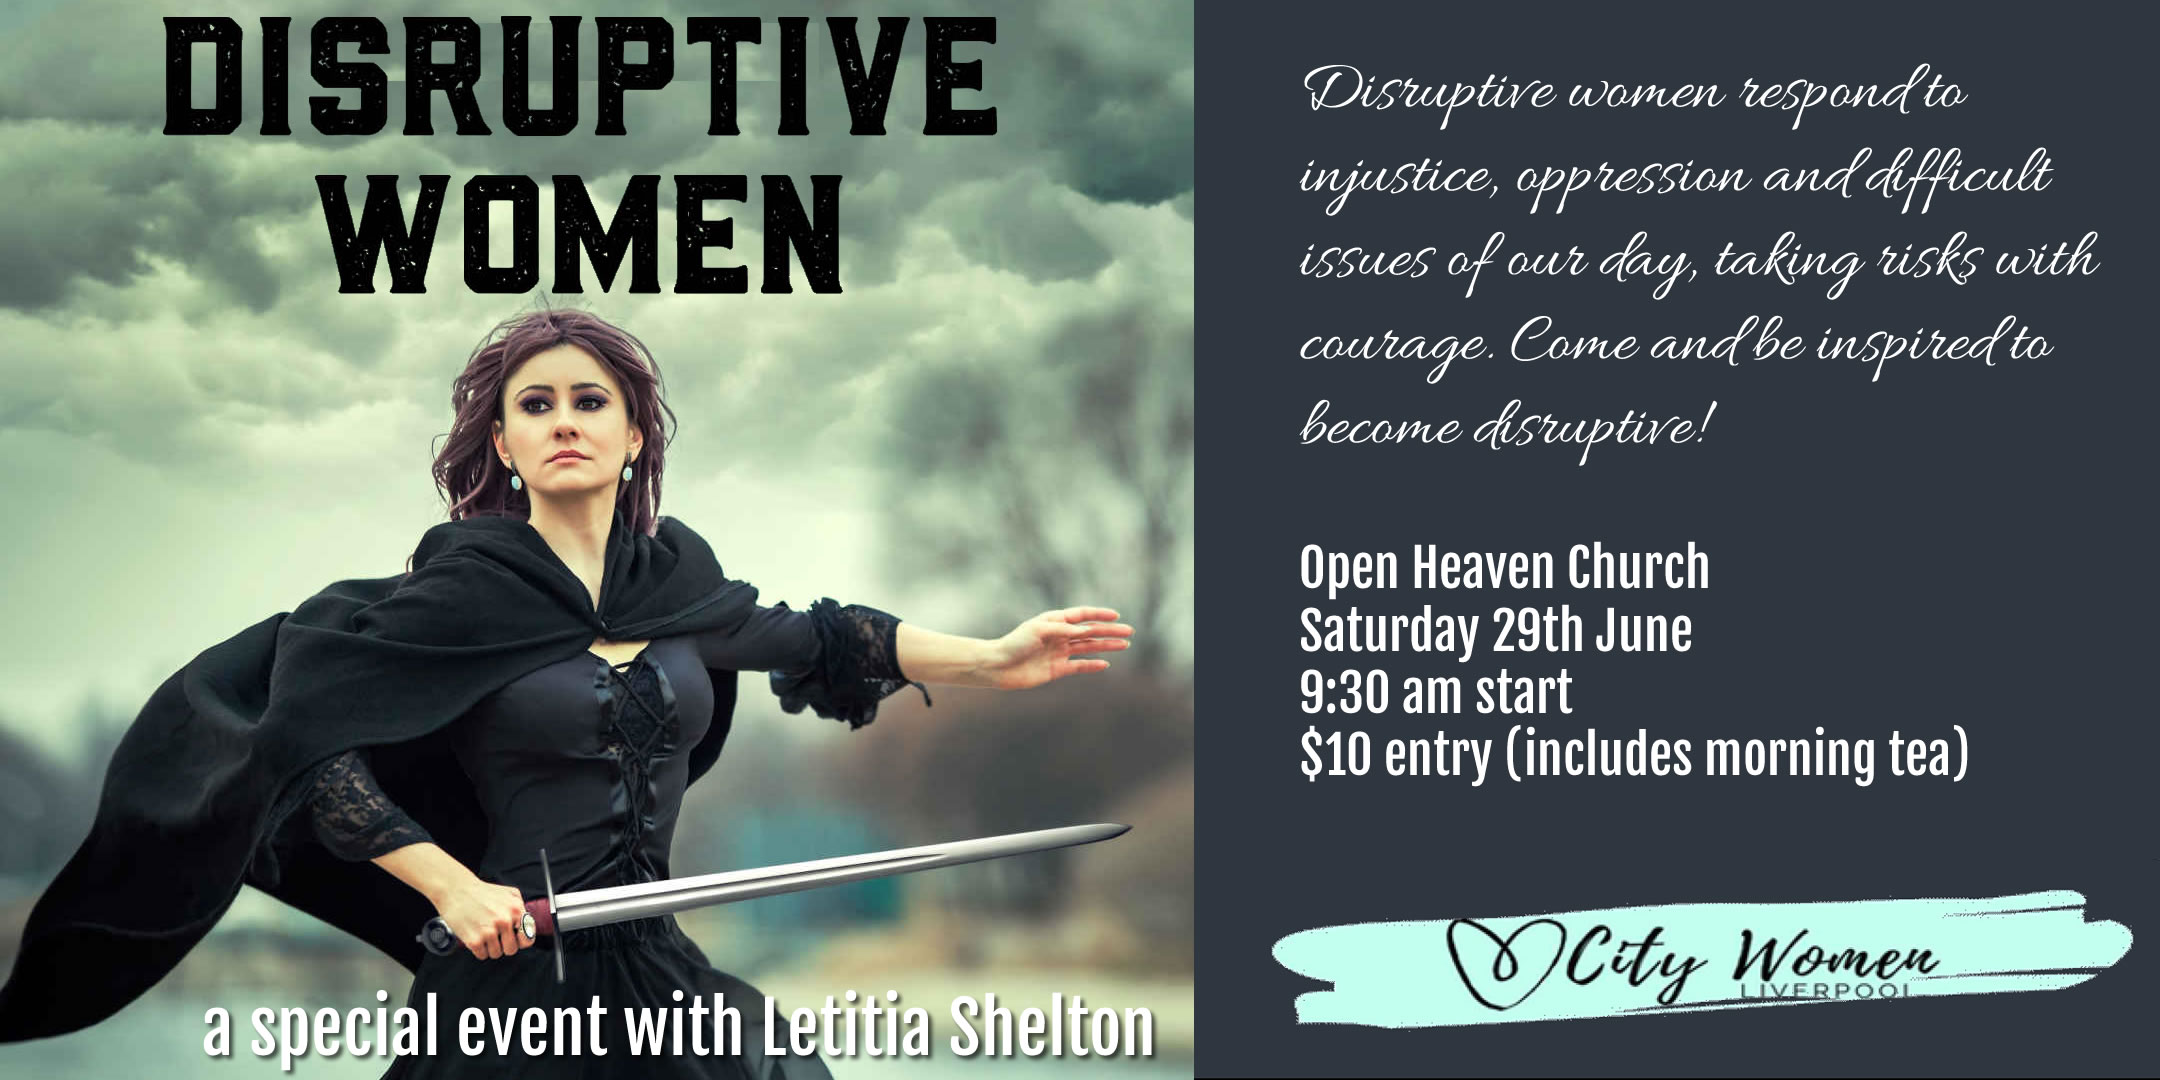 Disruptive Women – a special Event with Letitia Shelton 29 June